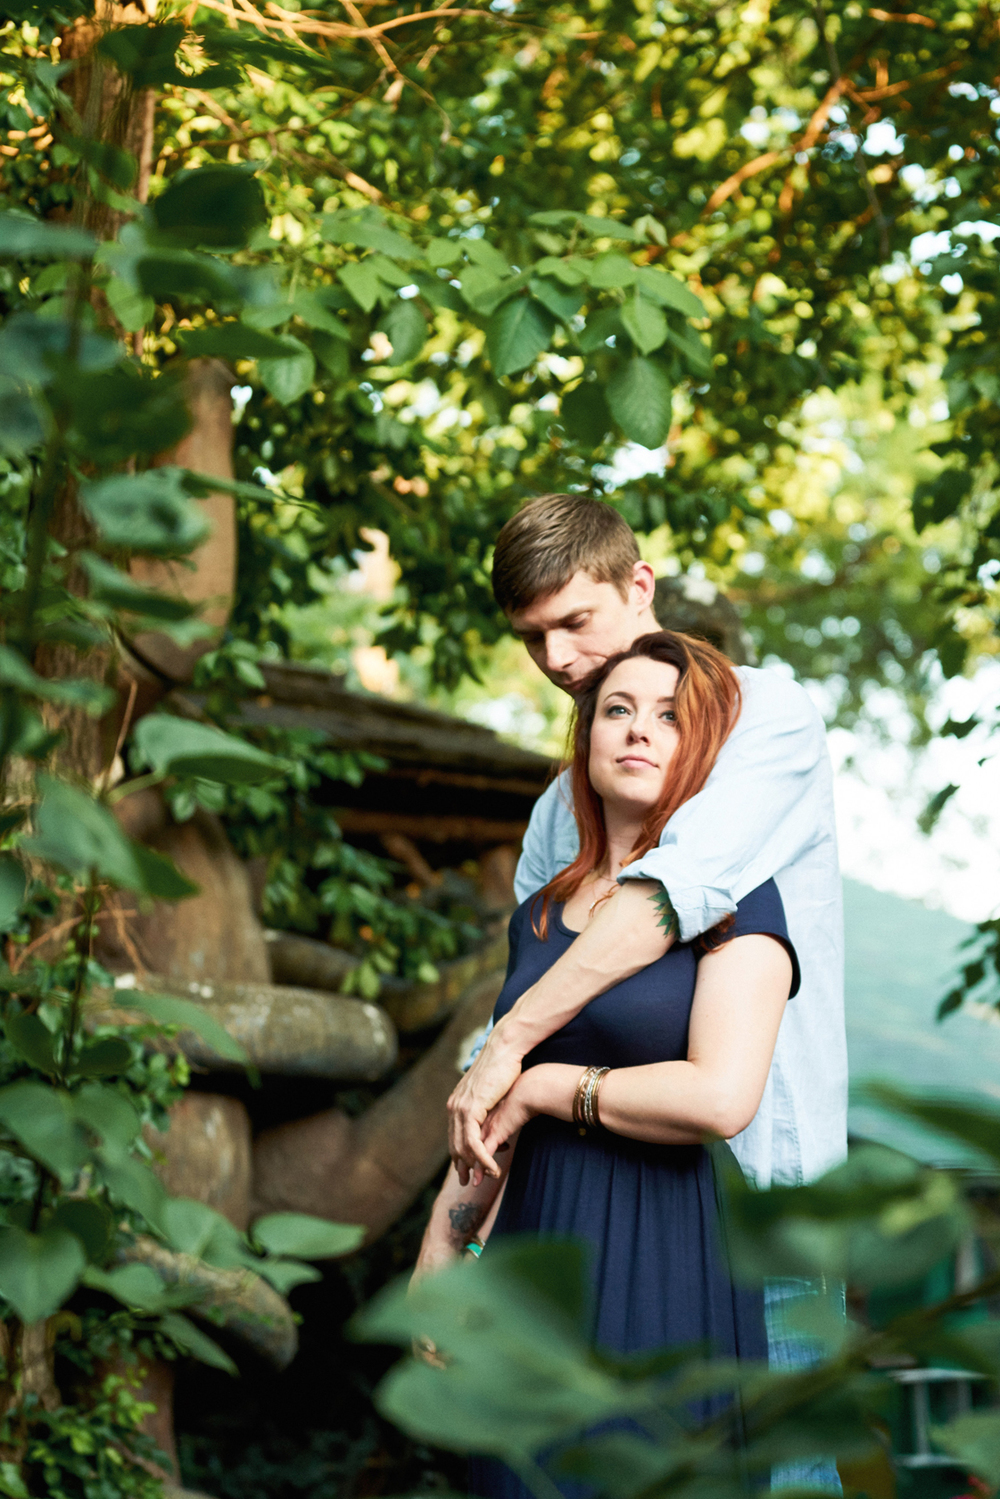 St Louis Engagement Session in St Charles County by Oldani Photography St. Louis Wedding Photographers